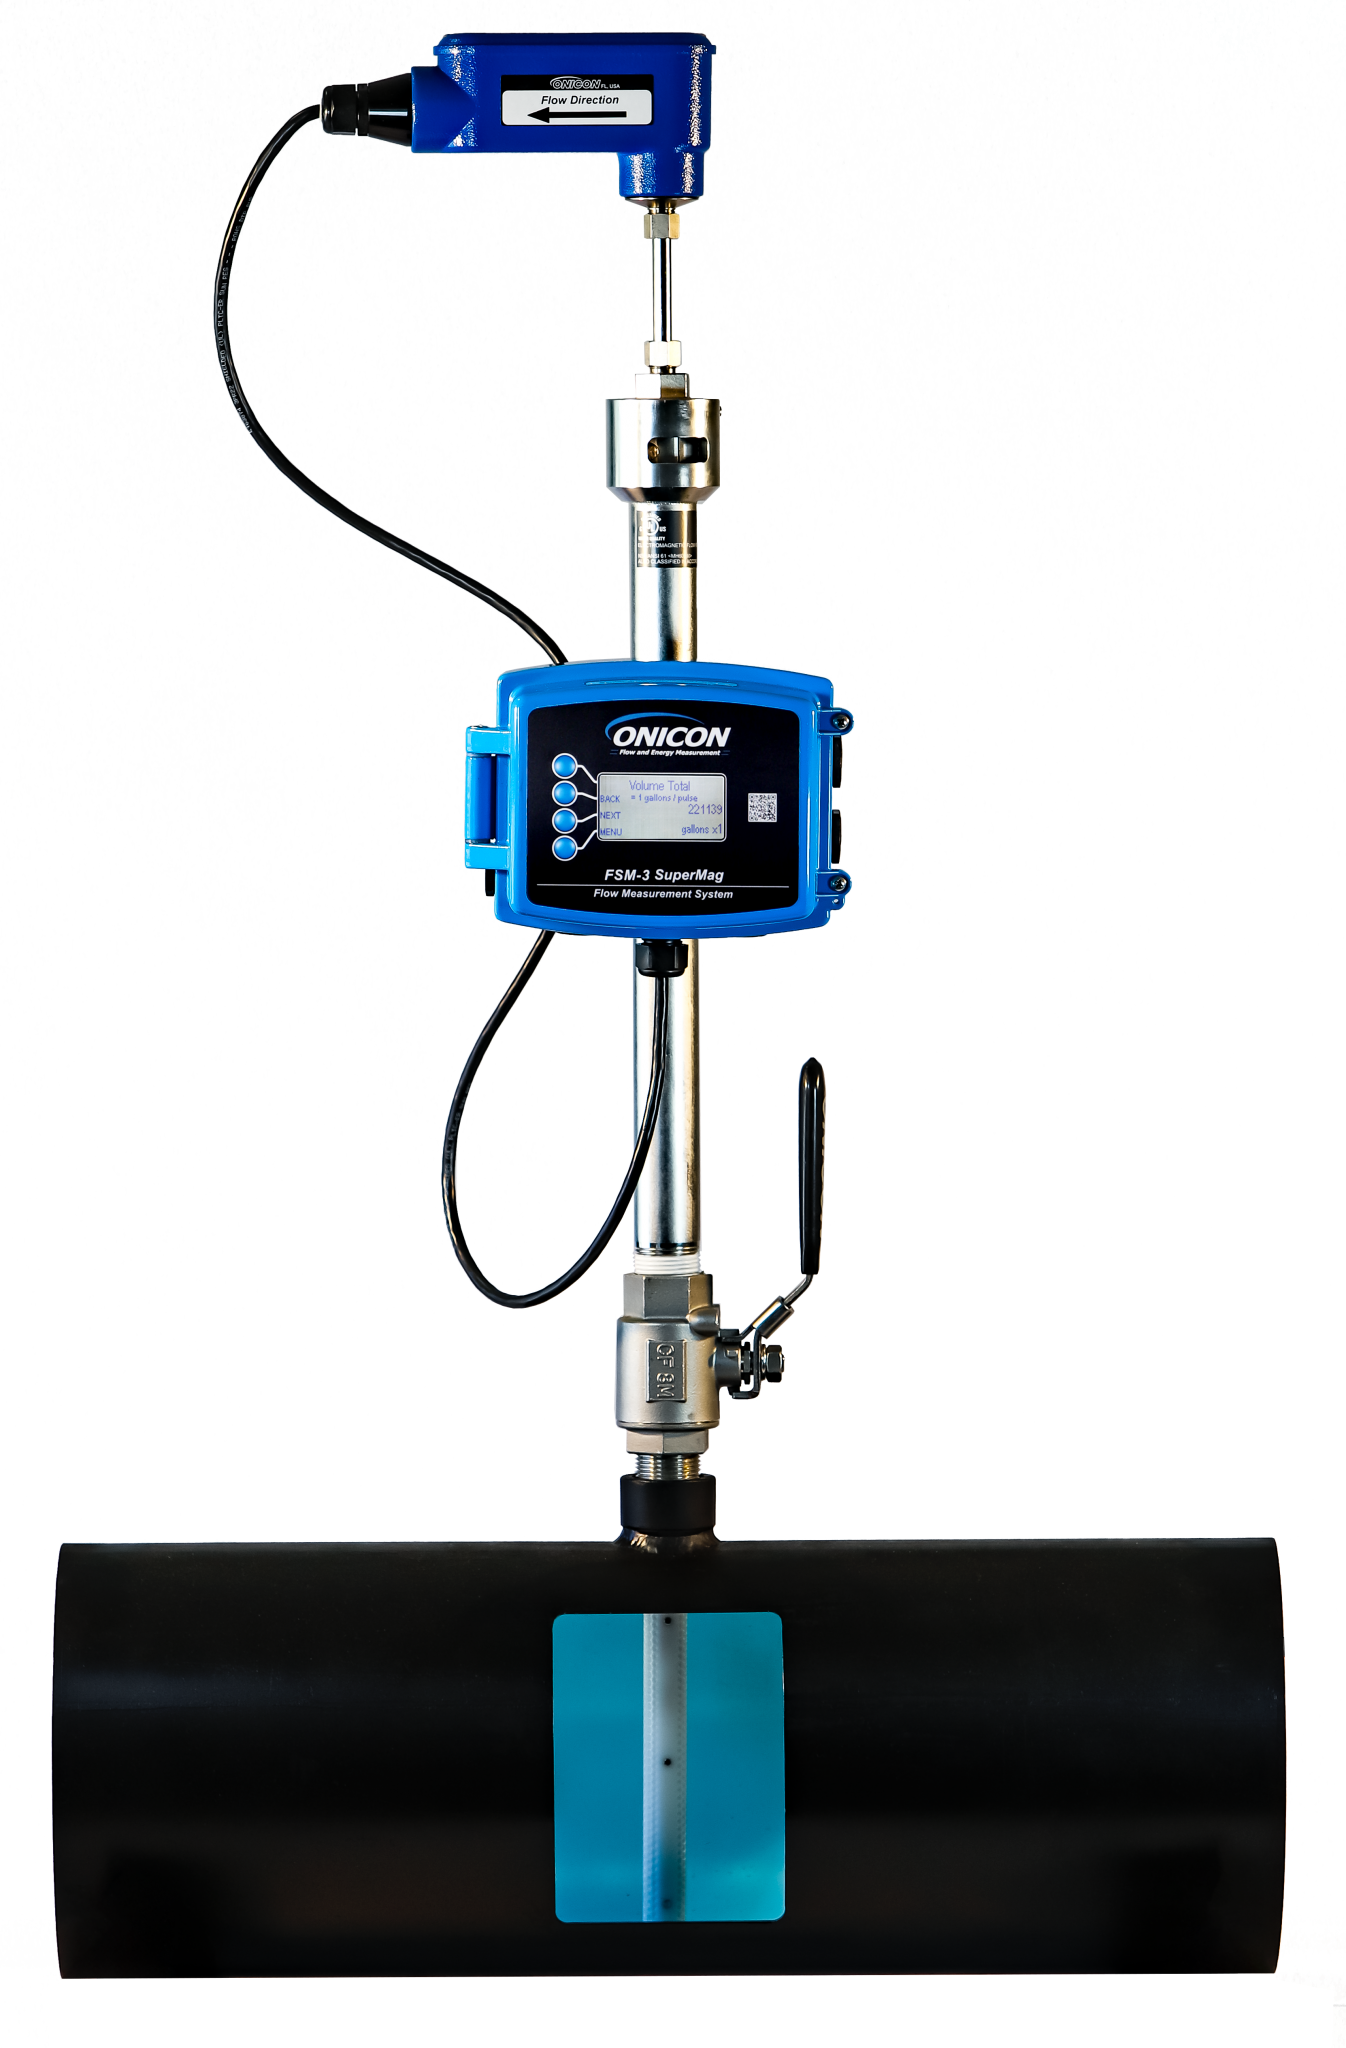 FSM-3 Series Supermag Insertion Flow Meter